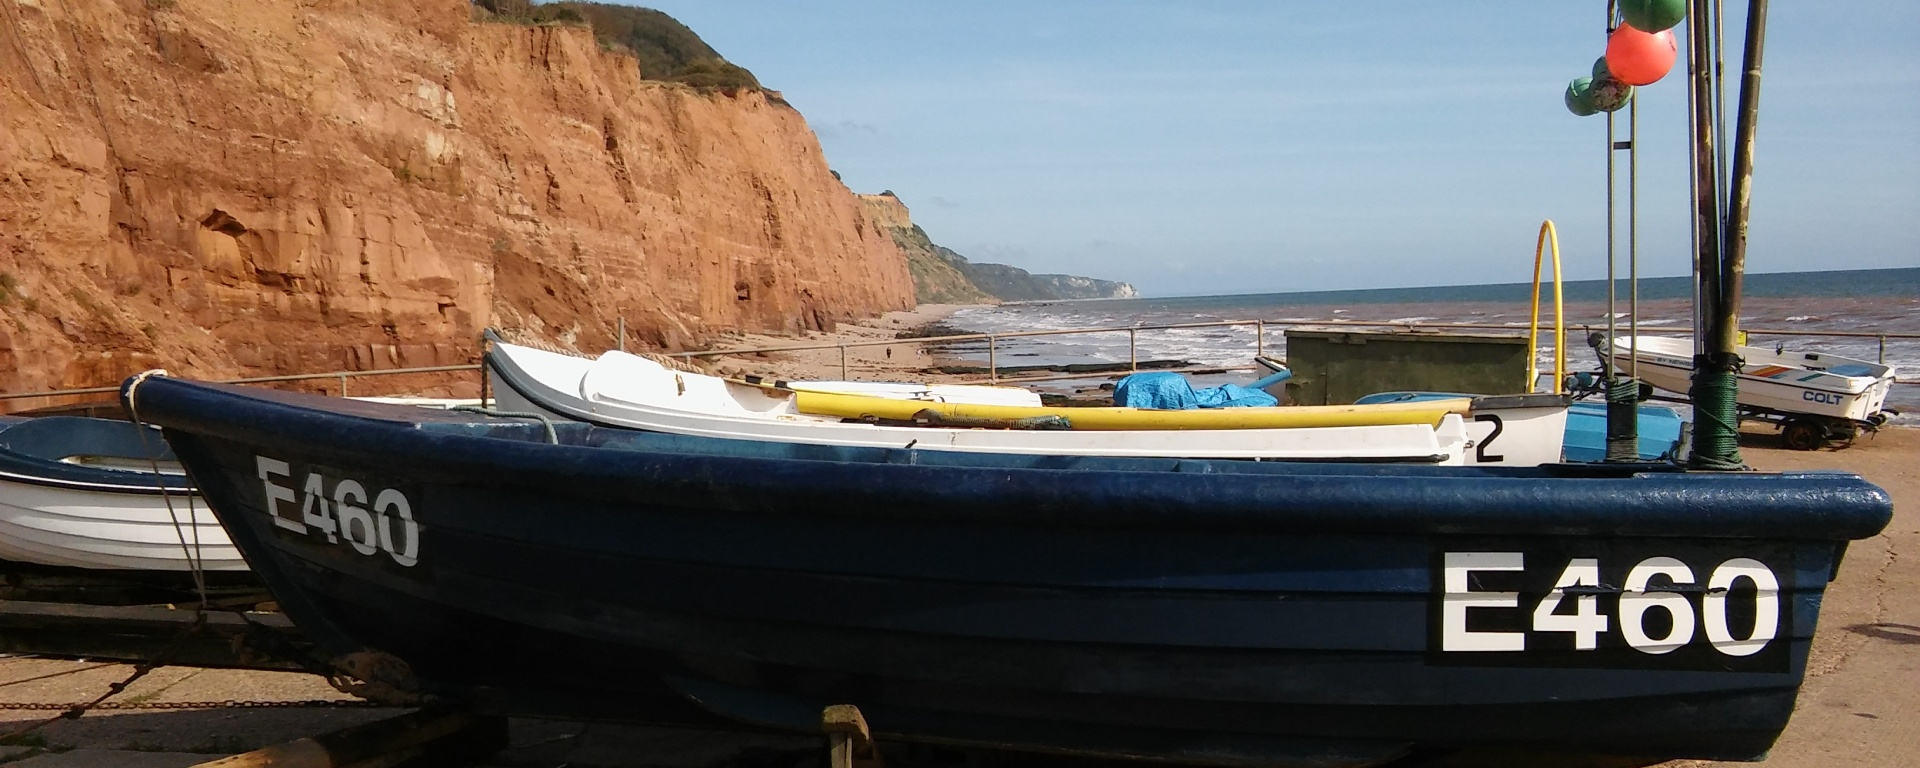 sidmouth fishing boat cliffs